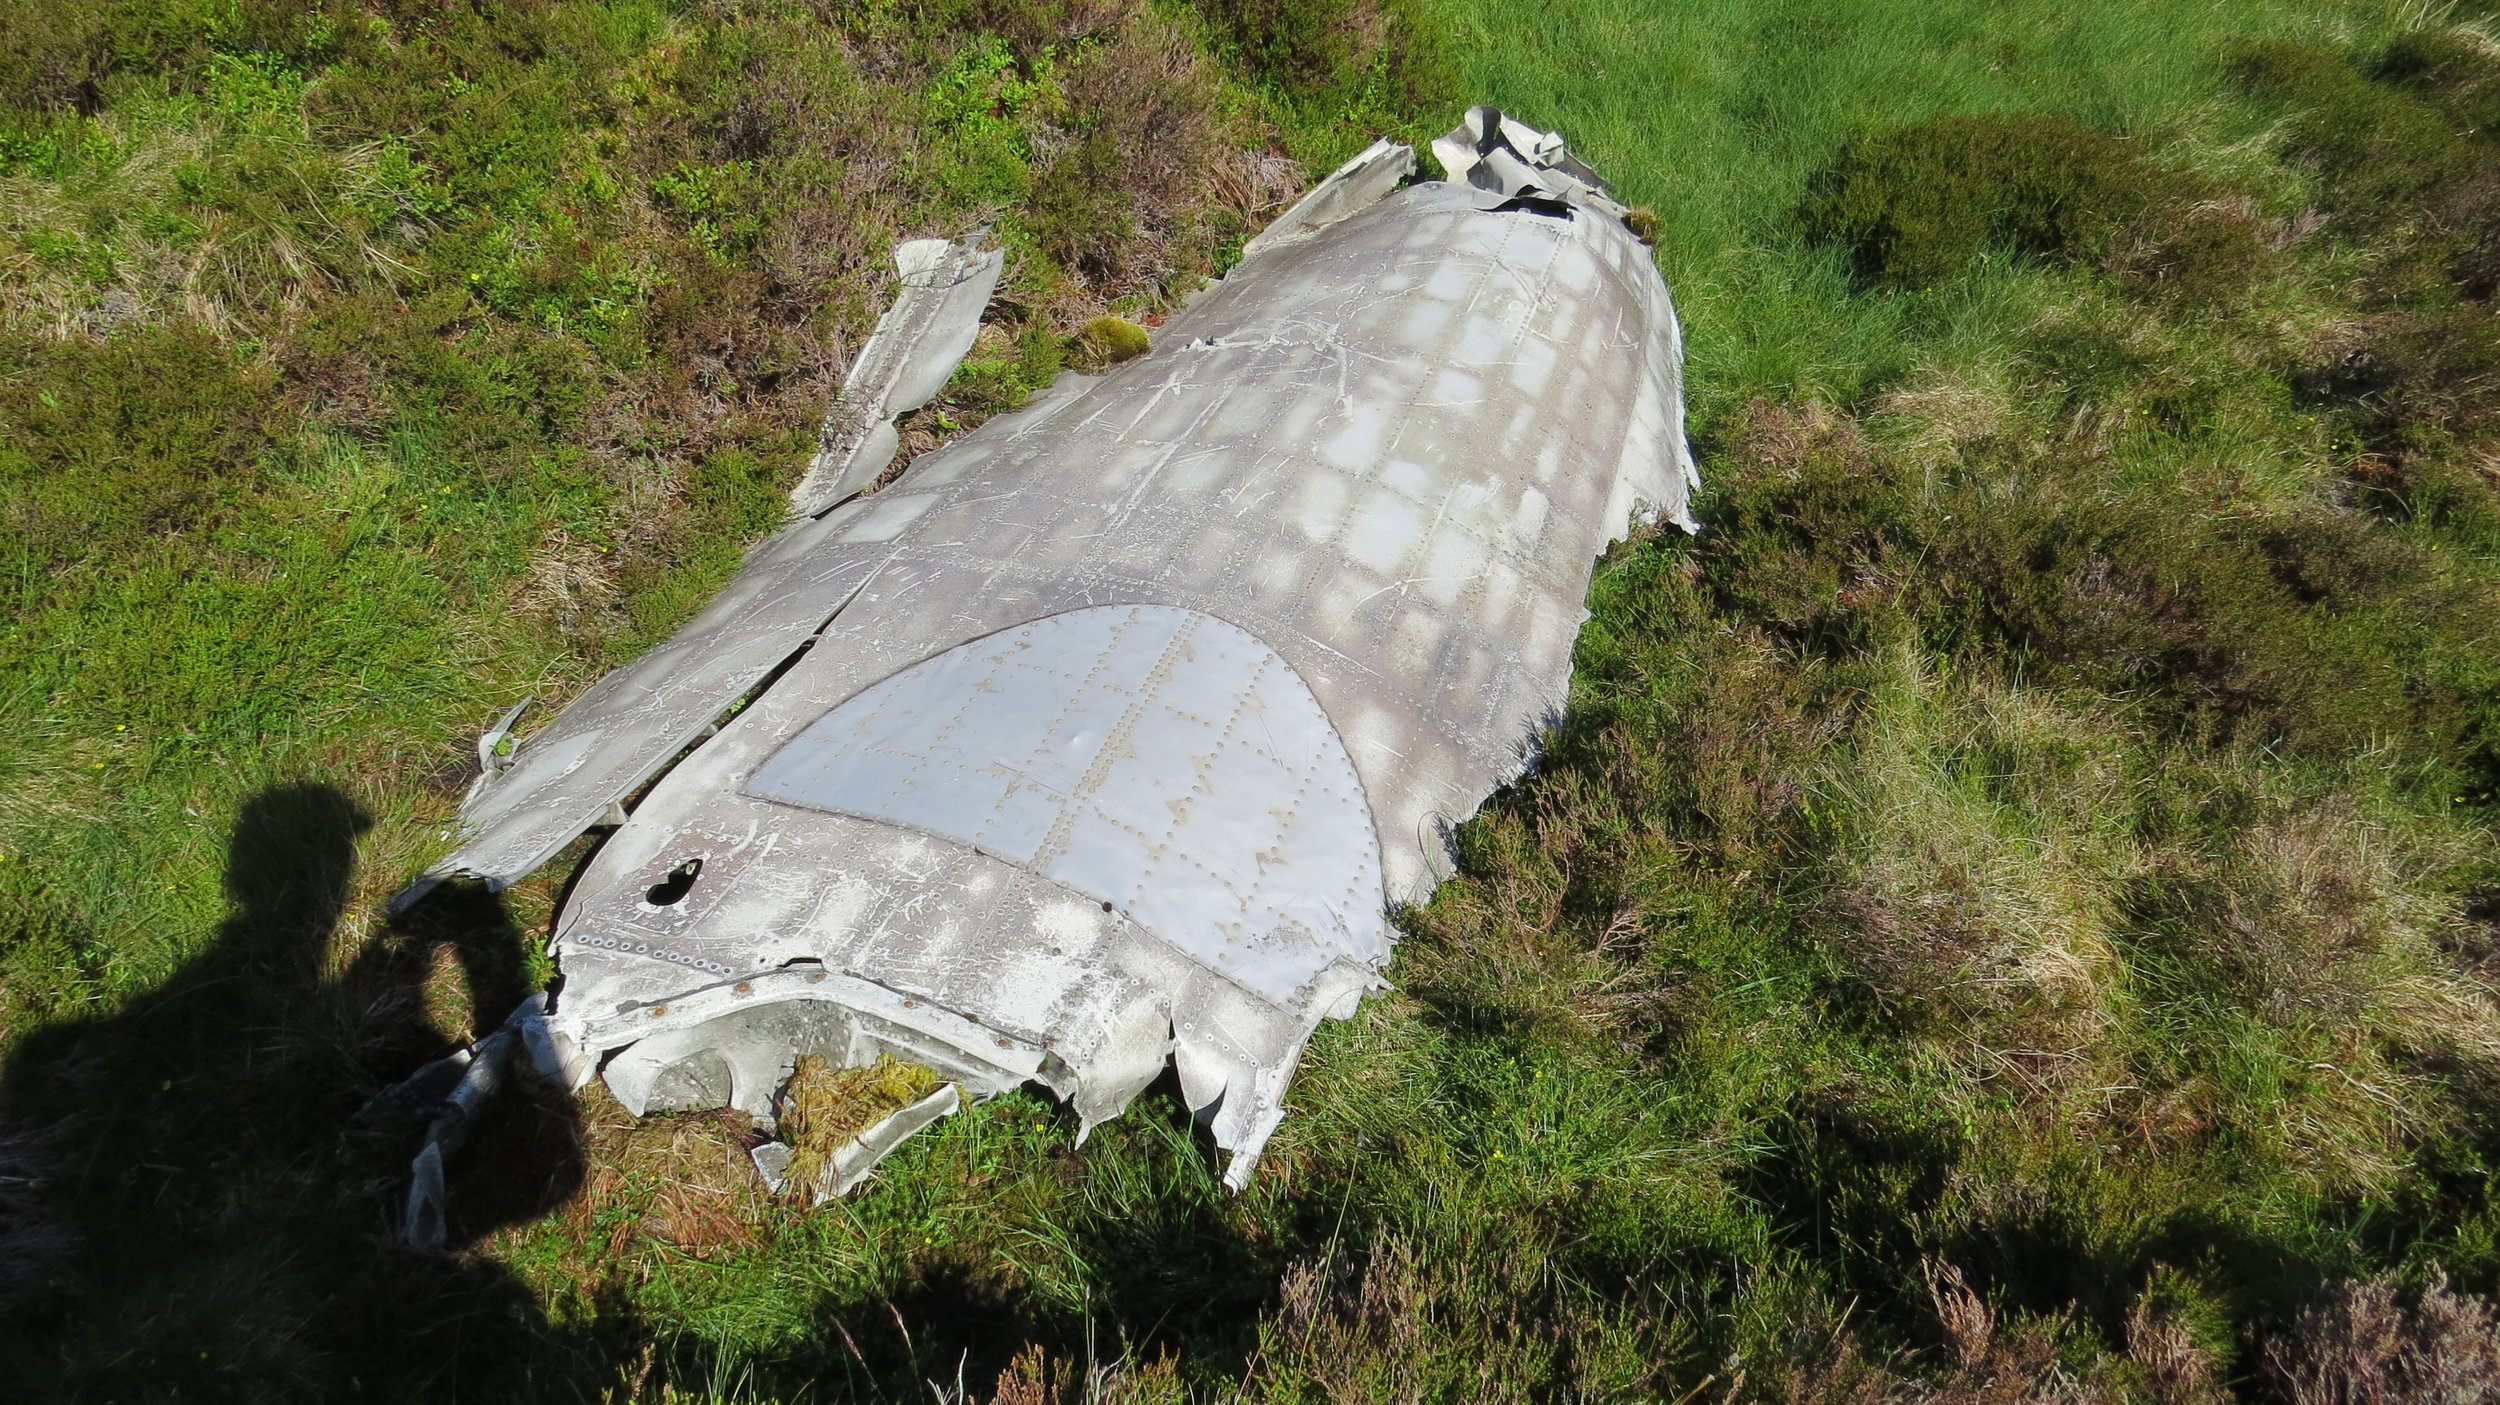 Part of a Plane Wreck